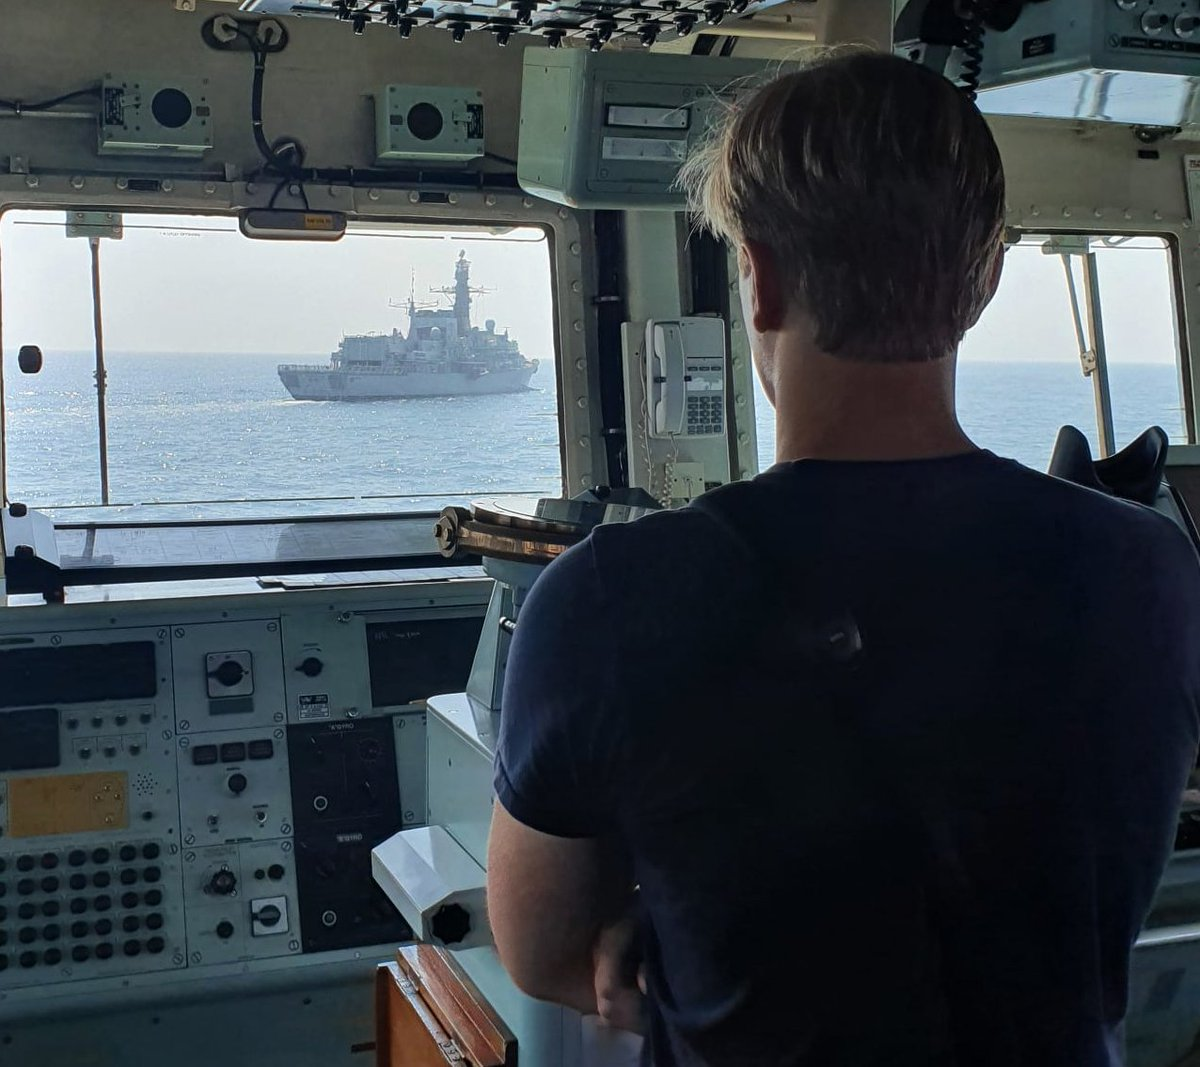 #CloseEncounters @HMSMontrose rendezvoused with us in the Gulf to transfer stores via seaboat before she headed out on patrol - thanks for your help and well see you soon! #fairwindsandfollowingseas!